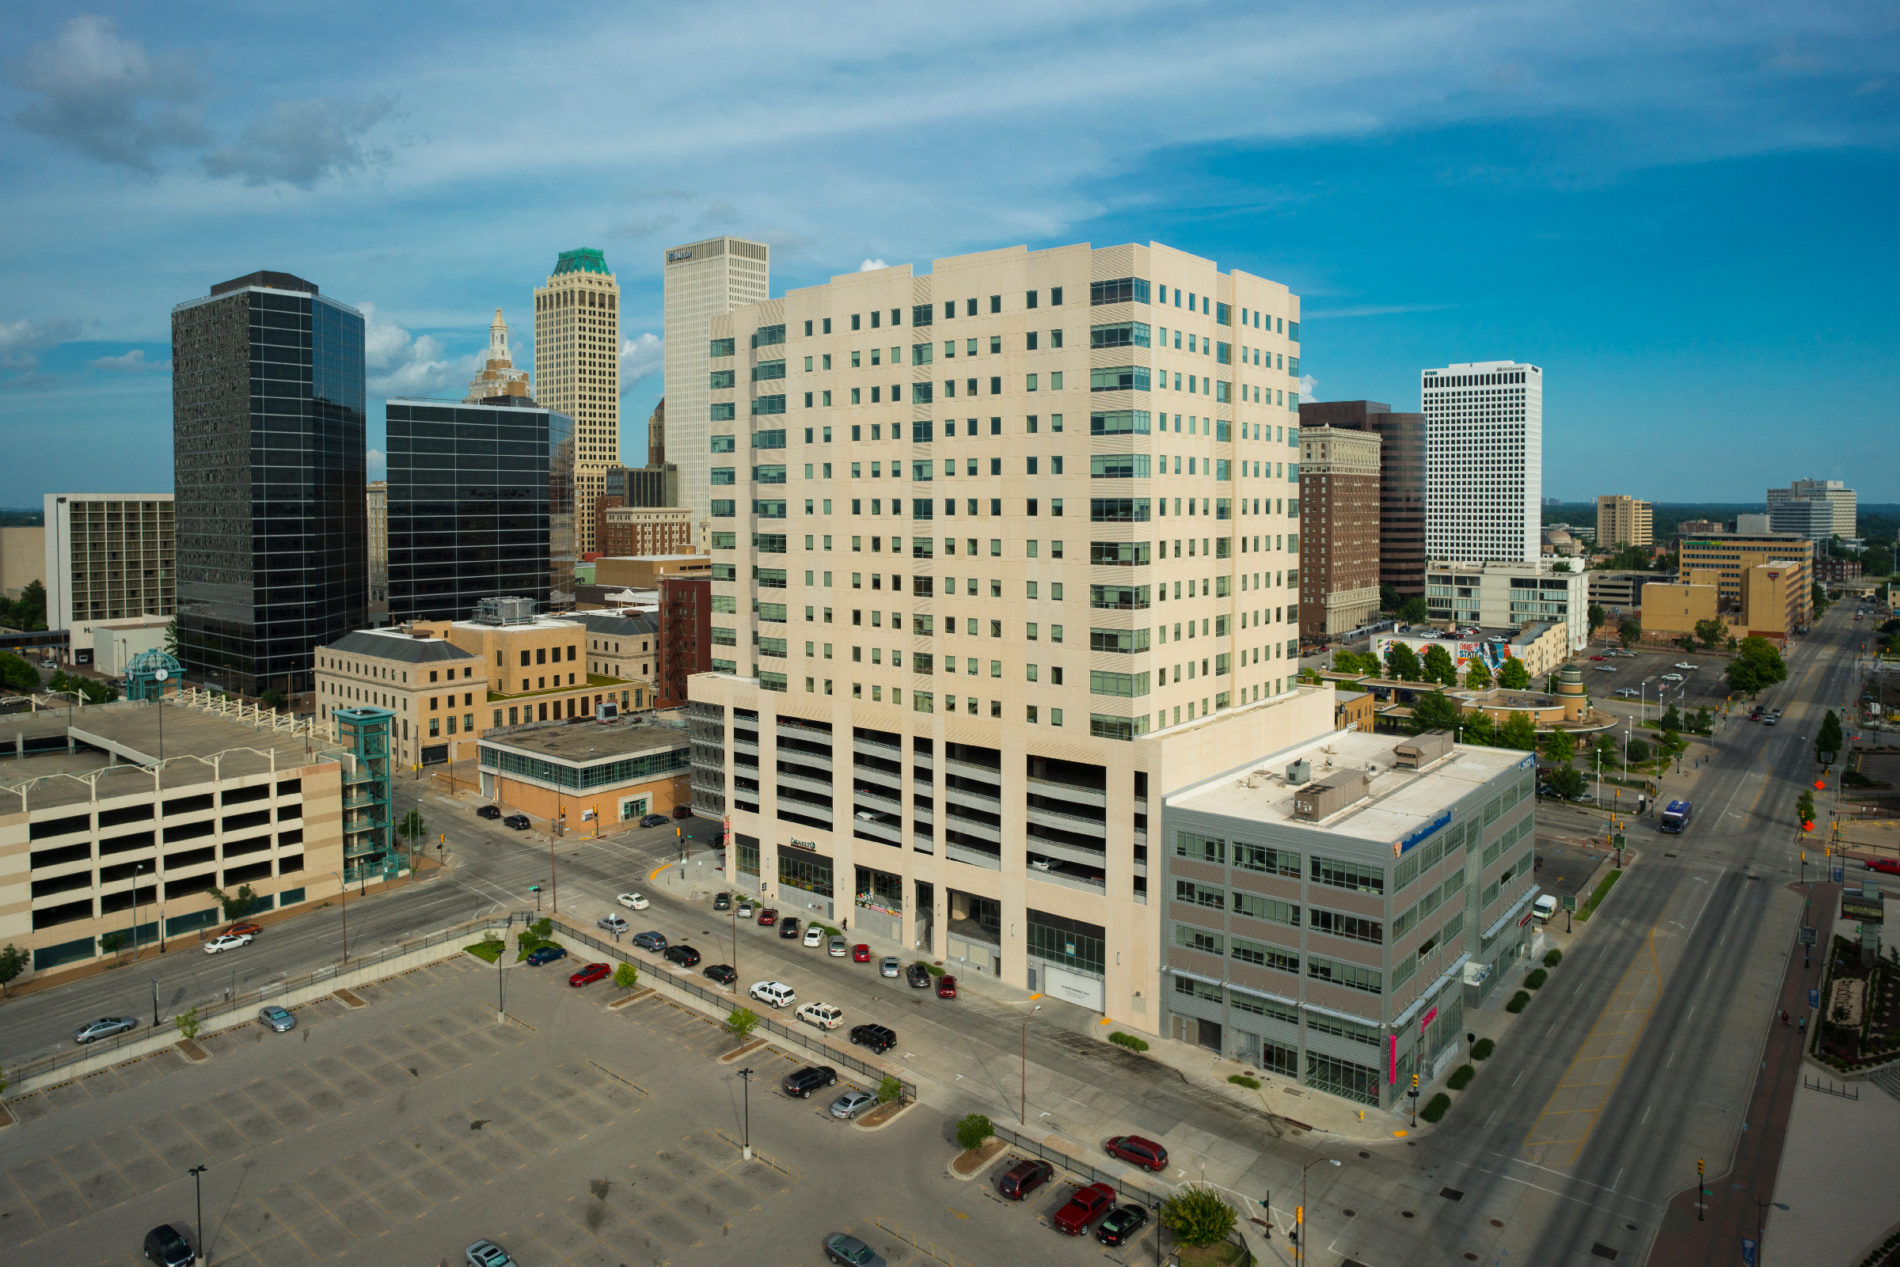 Downtown Tulsa image showing Cimarex building